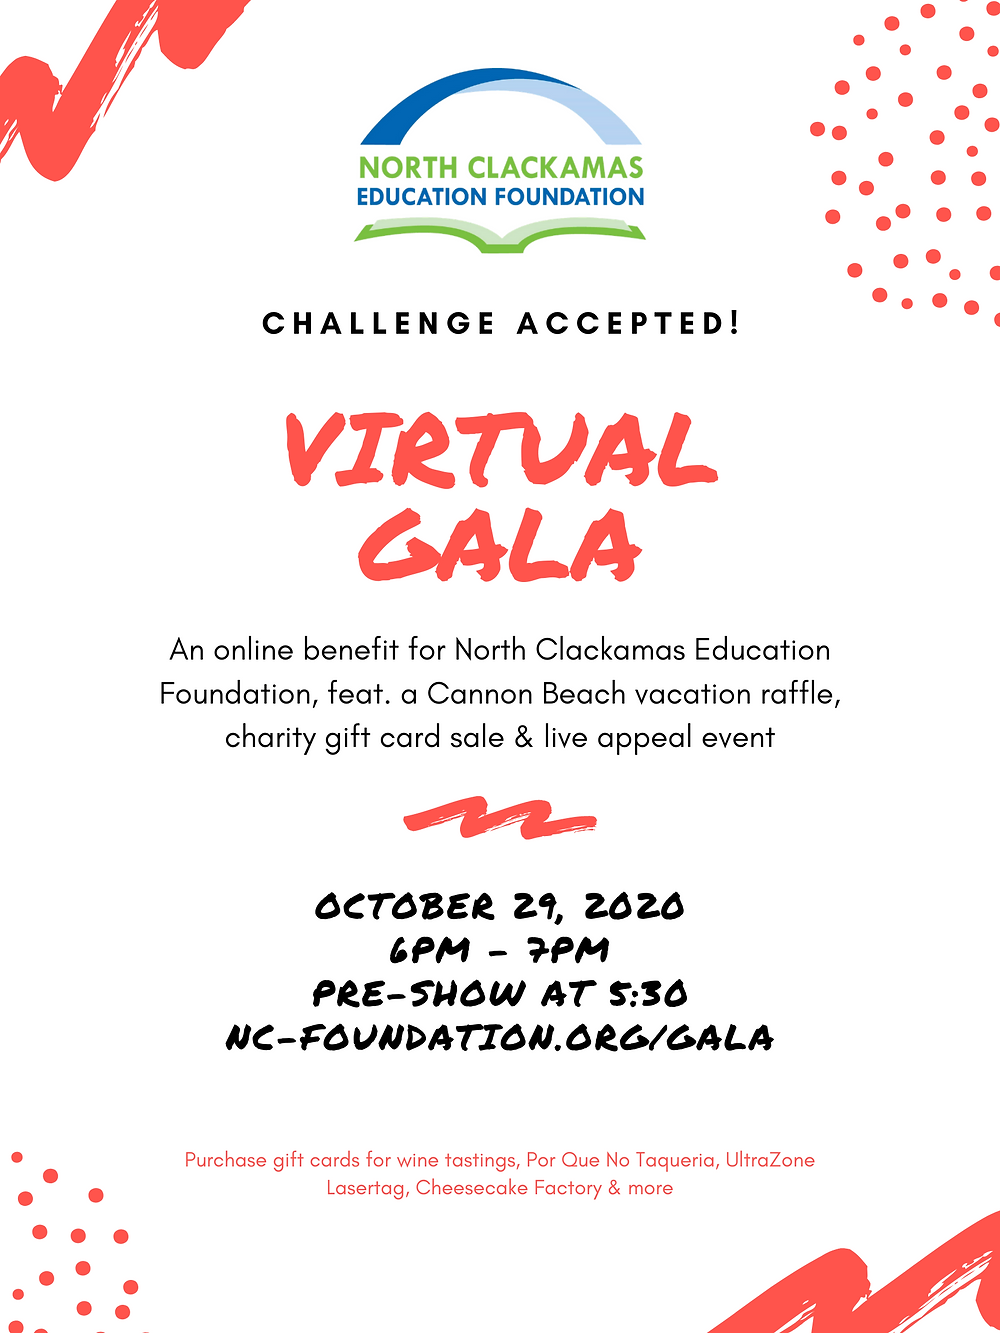 North Clackamas Education Foundation's virtual gala will take place on Oct. 29, 2020.